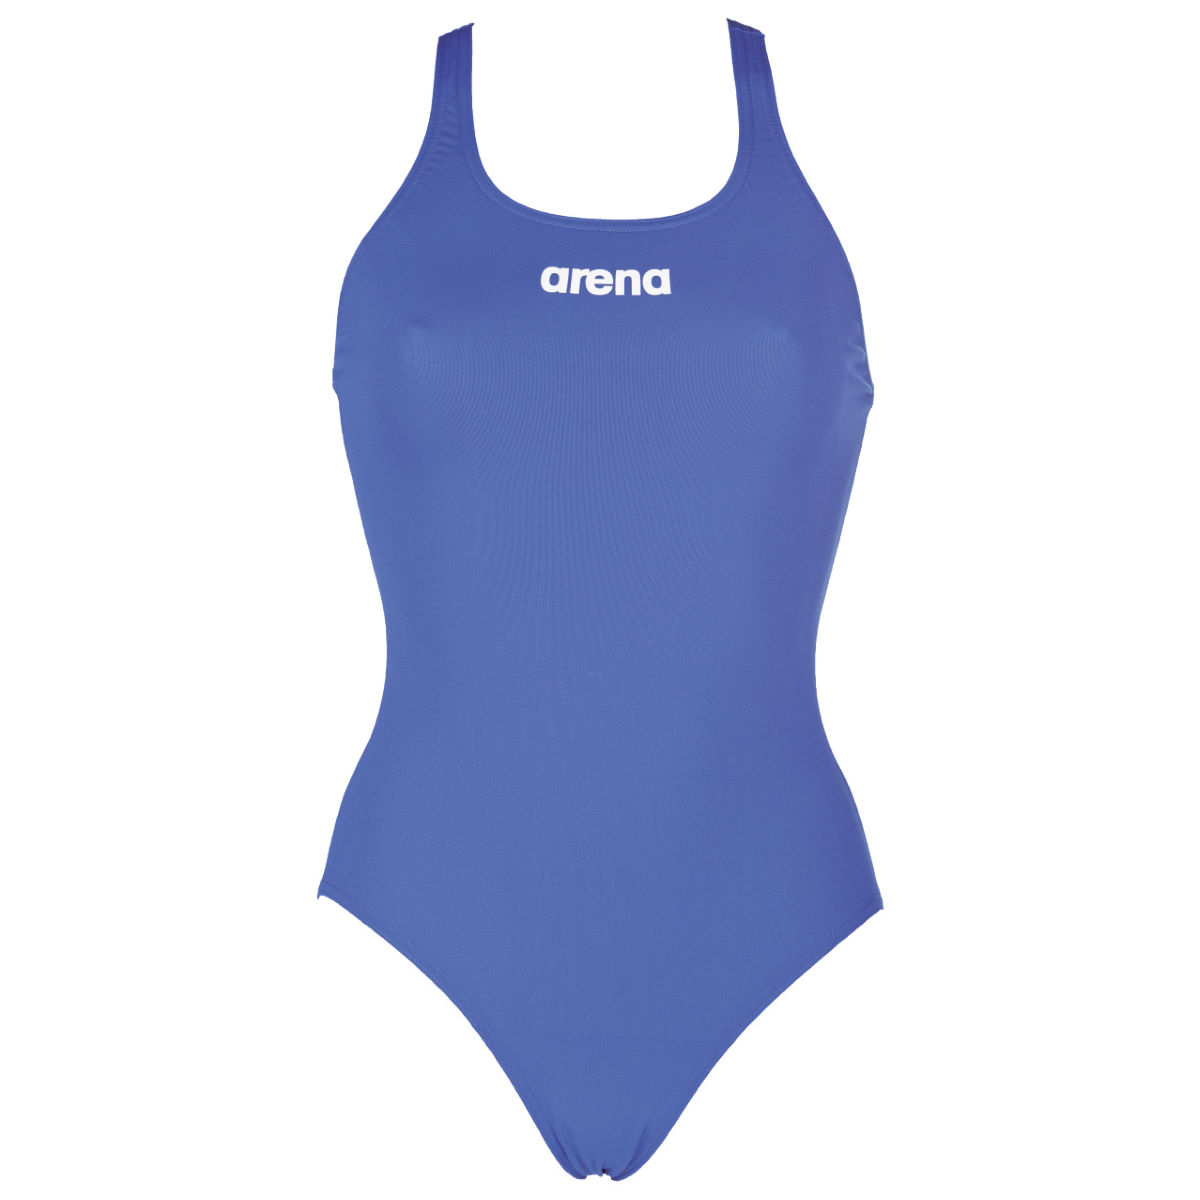 arena women Results 1 - 48 of 580  free shipping on many items shop from the world's largest selection and best  deals for arena swimwear for women shop with confidence.